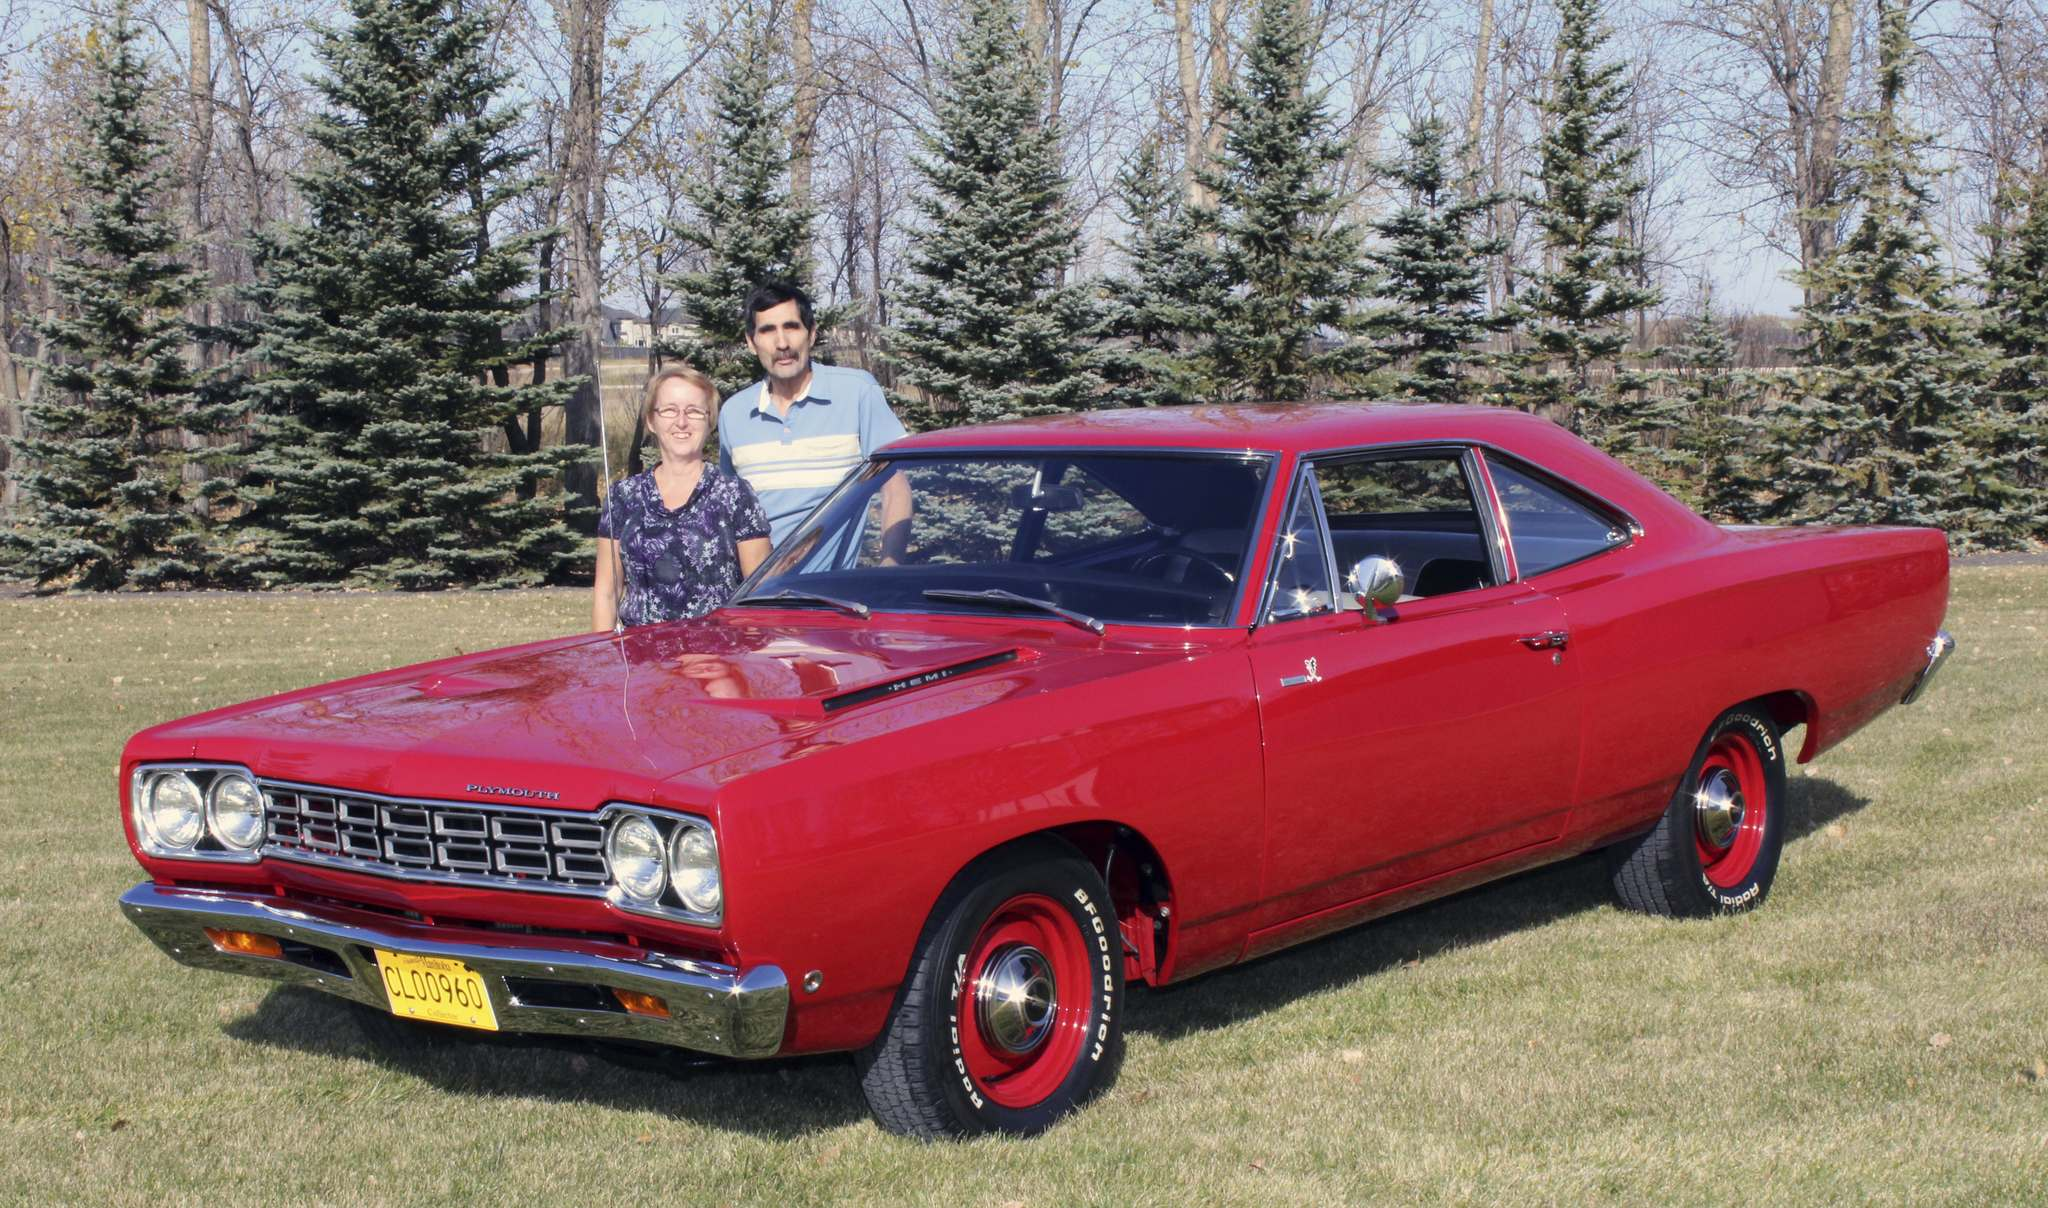 Photos by Larry D'Argis / Winnipeg Free PressRichard and Joanne Gregoire with their restored 1968 Plymouth Road Runner. Richard bought the car in 2012 and the overhaul was complete in the spring of 2014.